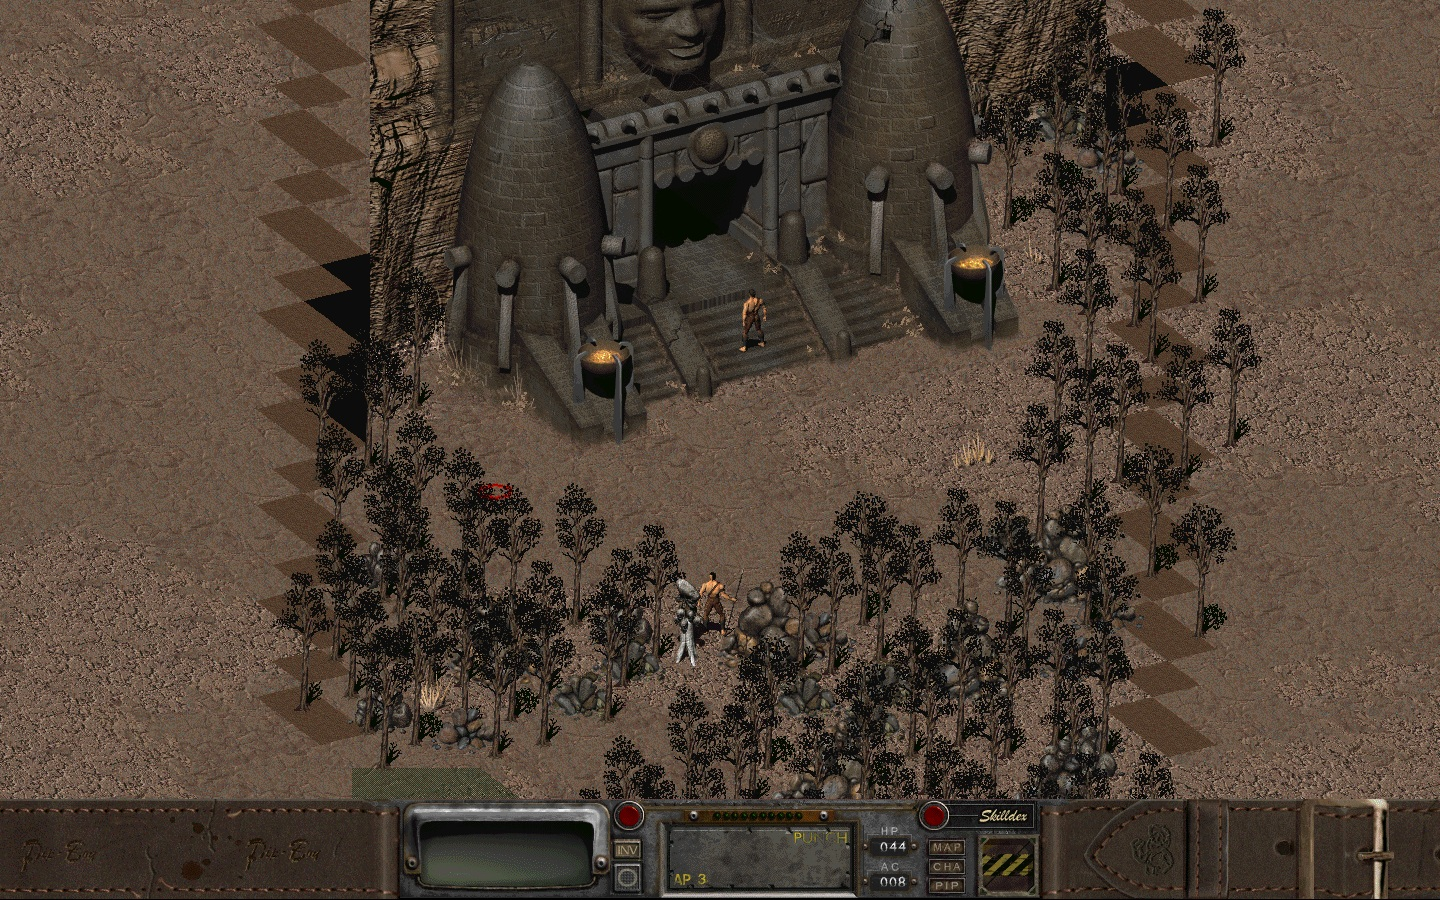 Fallout 2 hi-res patch 3.0 released - Neoseeker